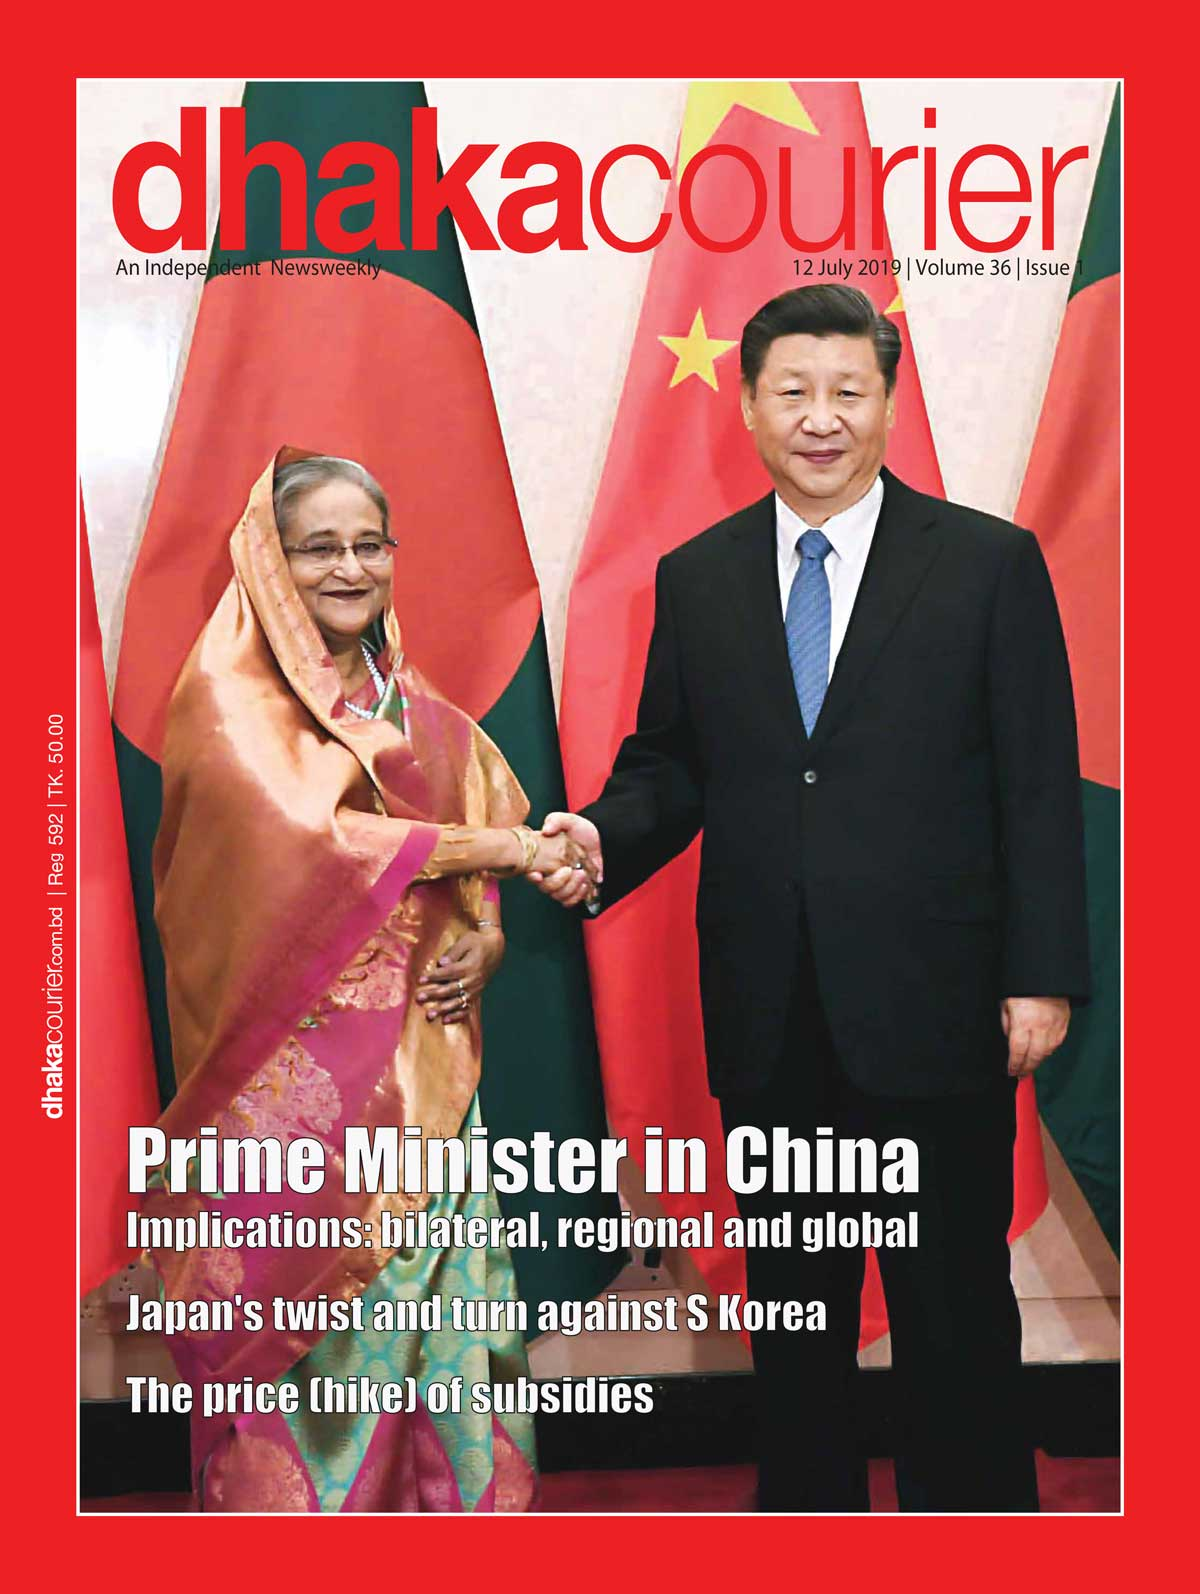 DhakaCourier Vol 36 Issue 01